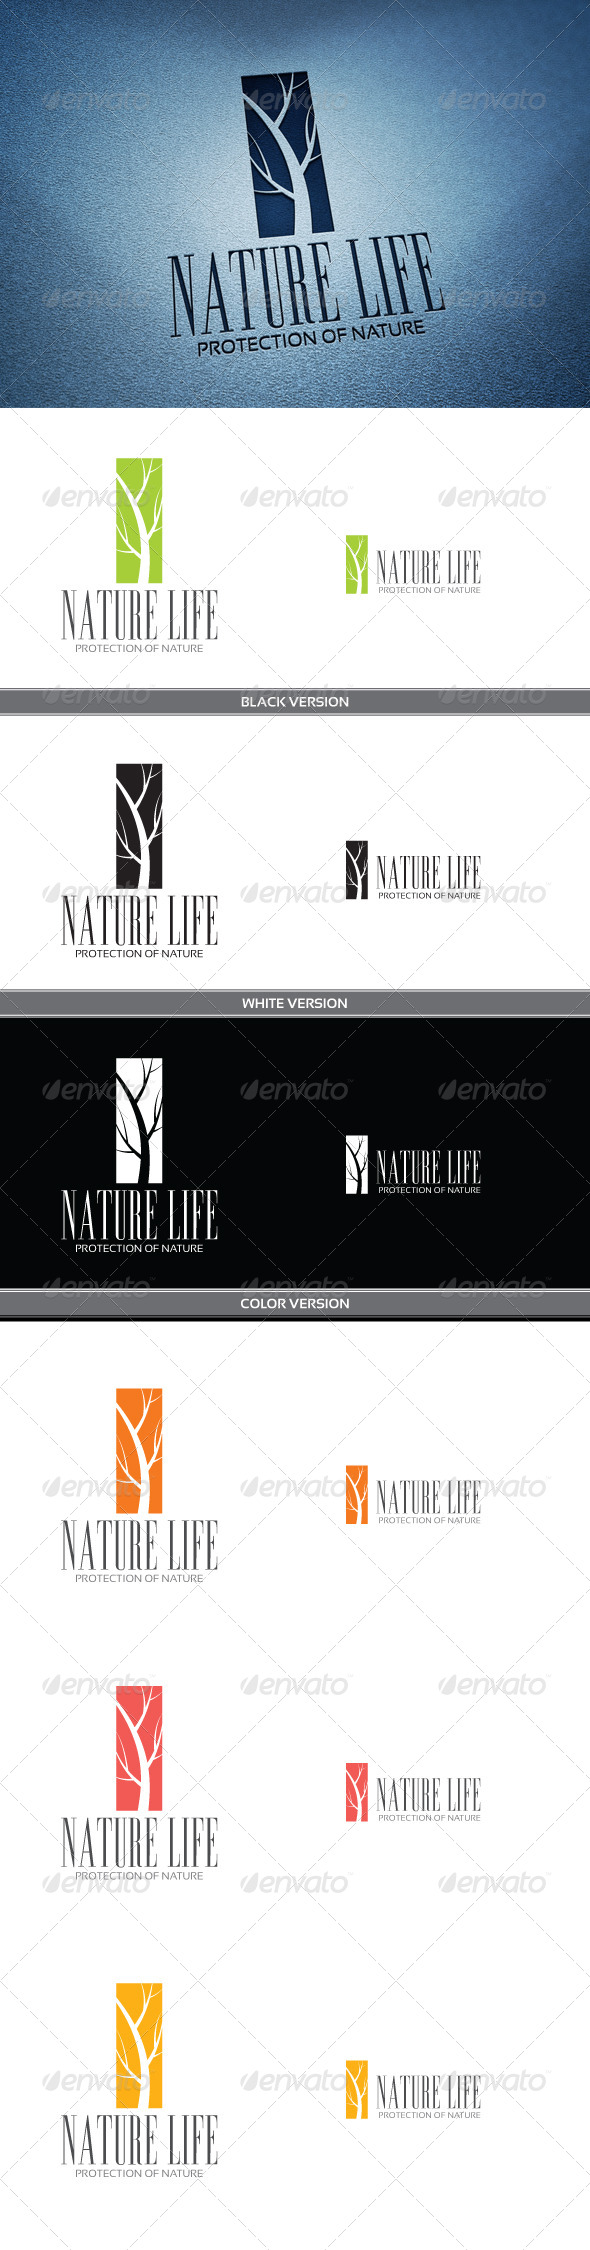 GraphicRiver Nature Life 3908891